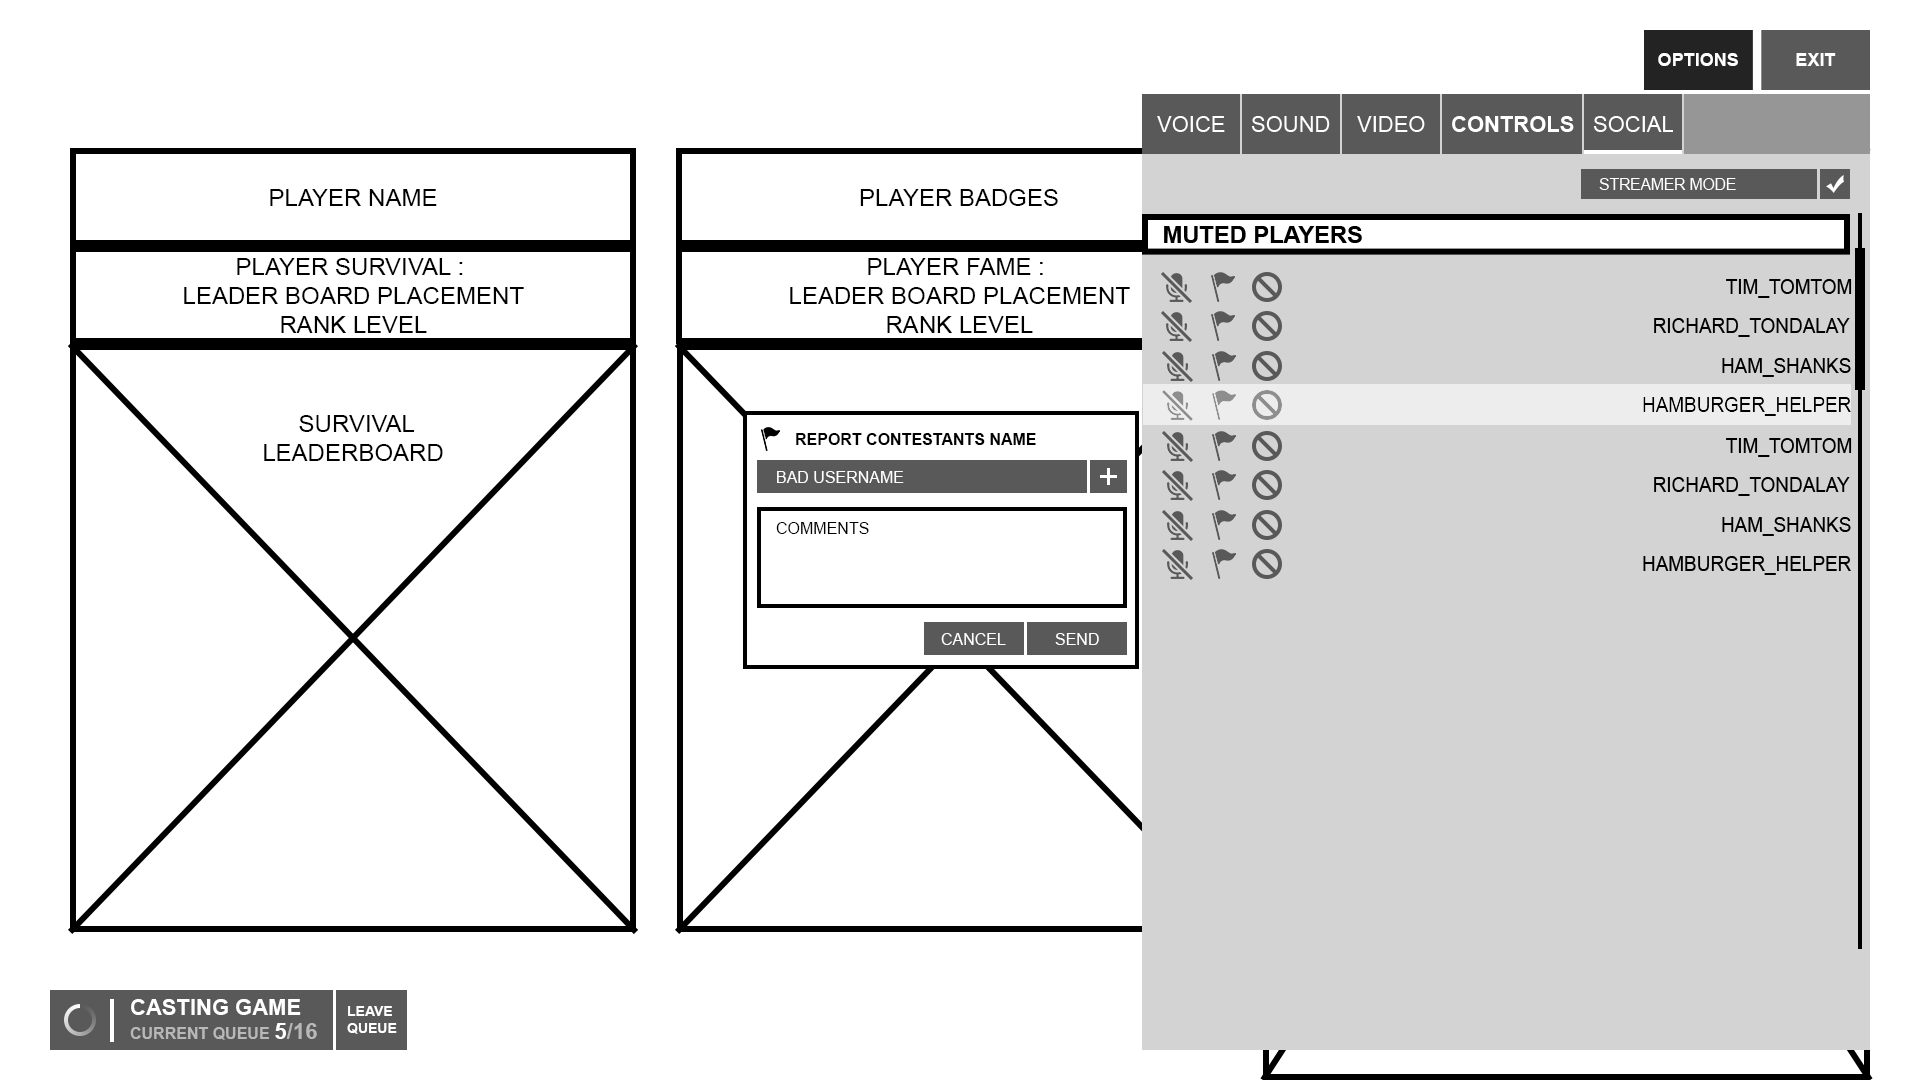 SOS_GameFlow_Wireframes_v4_00_12